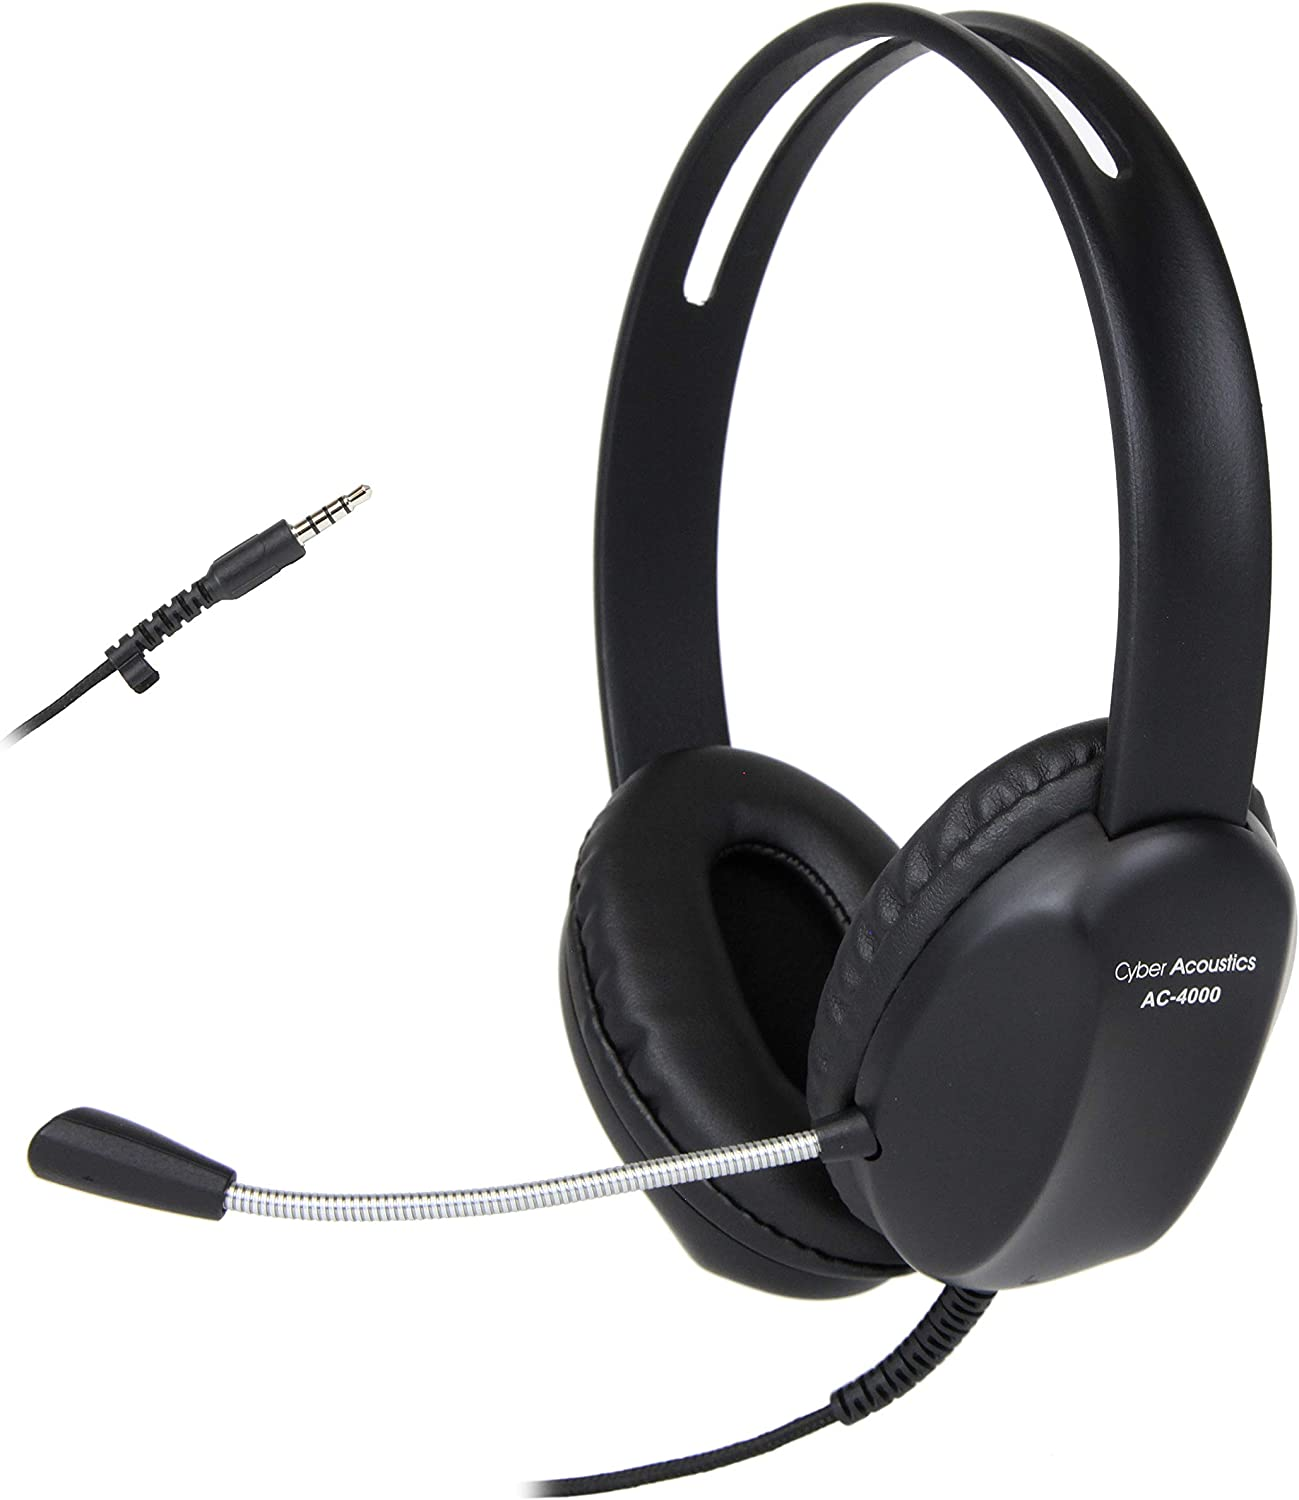 Cyber Acoustics 3.5mm Stereo Headset with Headphones and Noise Cancelling Microphone - 20 Pack - for PCs, Tablets, and Cell Phones in The Office, Classroom or Home (AC-4000-20)